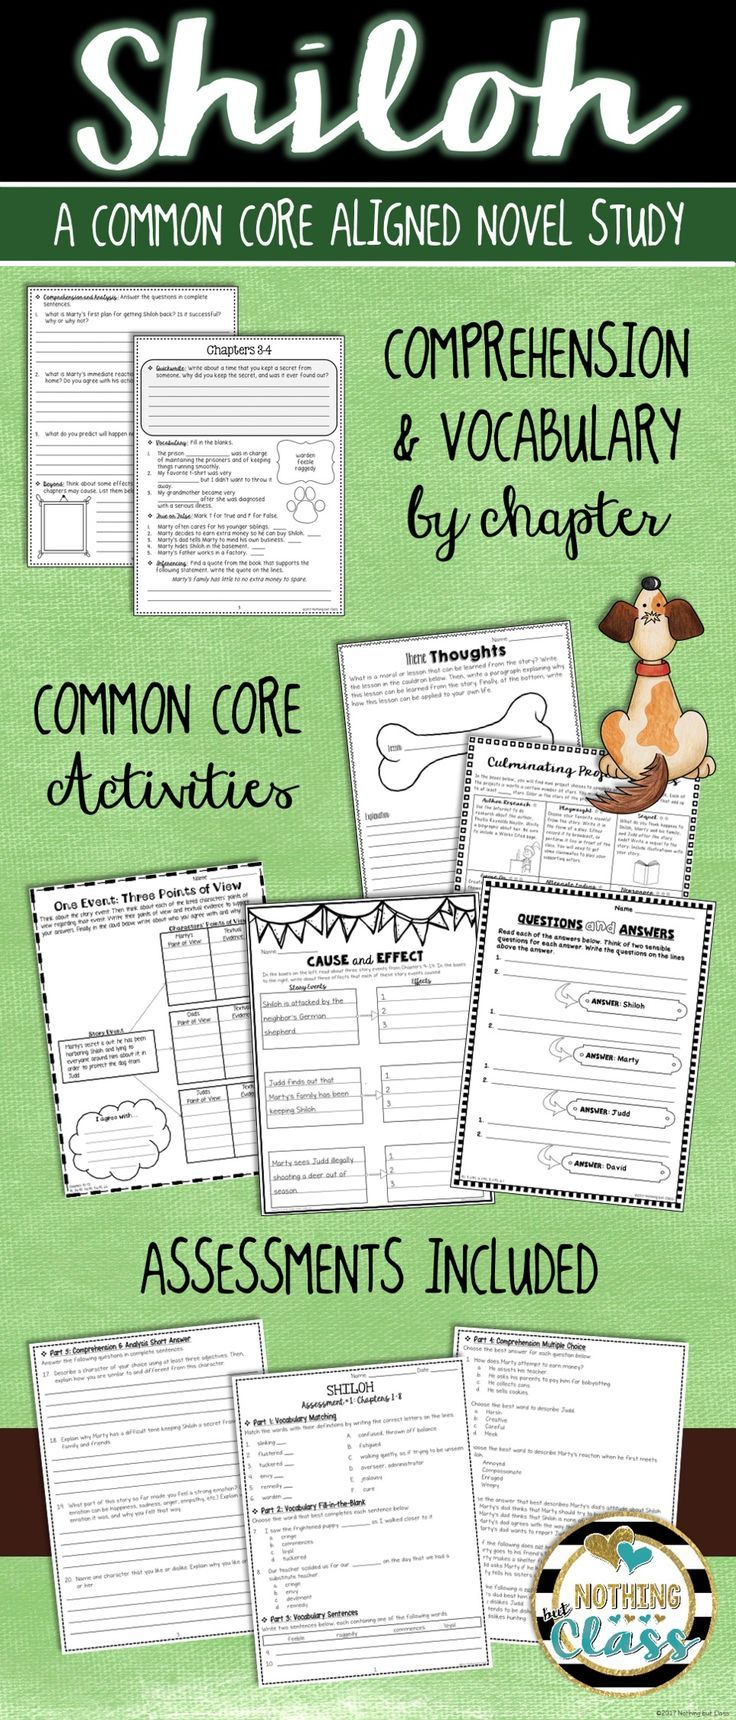 This 107 page book study for Shiloh, by Phyllis Reynolds Naylor, contains comprehension by chapter, vocabulary challenges, creative reading response activities and projects, tests, and much more!  You will find this literature guide to be teacher and student friendly. It contains a wide variety of question types, along with open-ended graphic organizers and unique activities, all carefully crafted for this particular story.